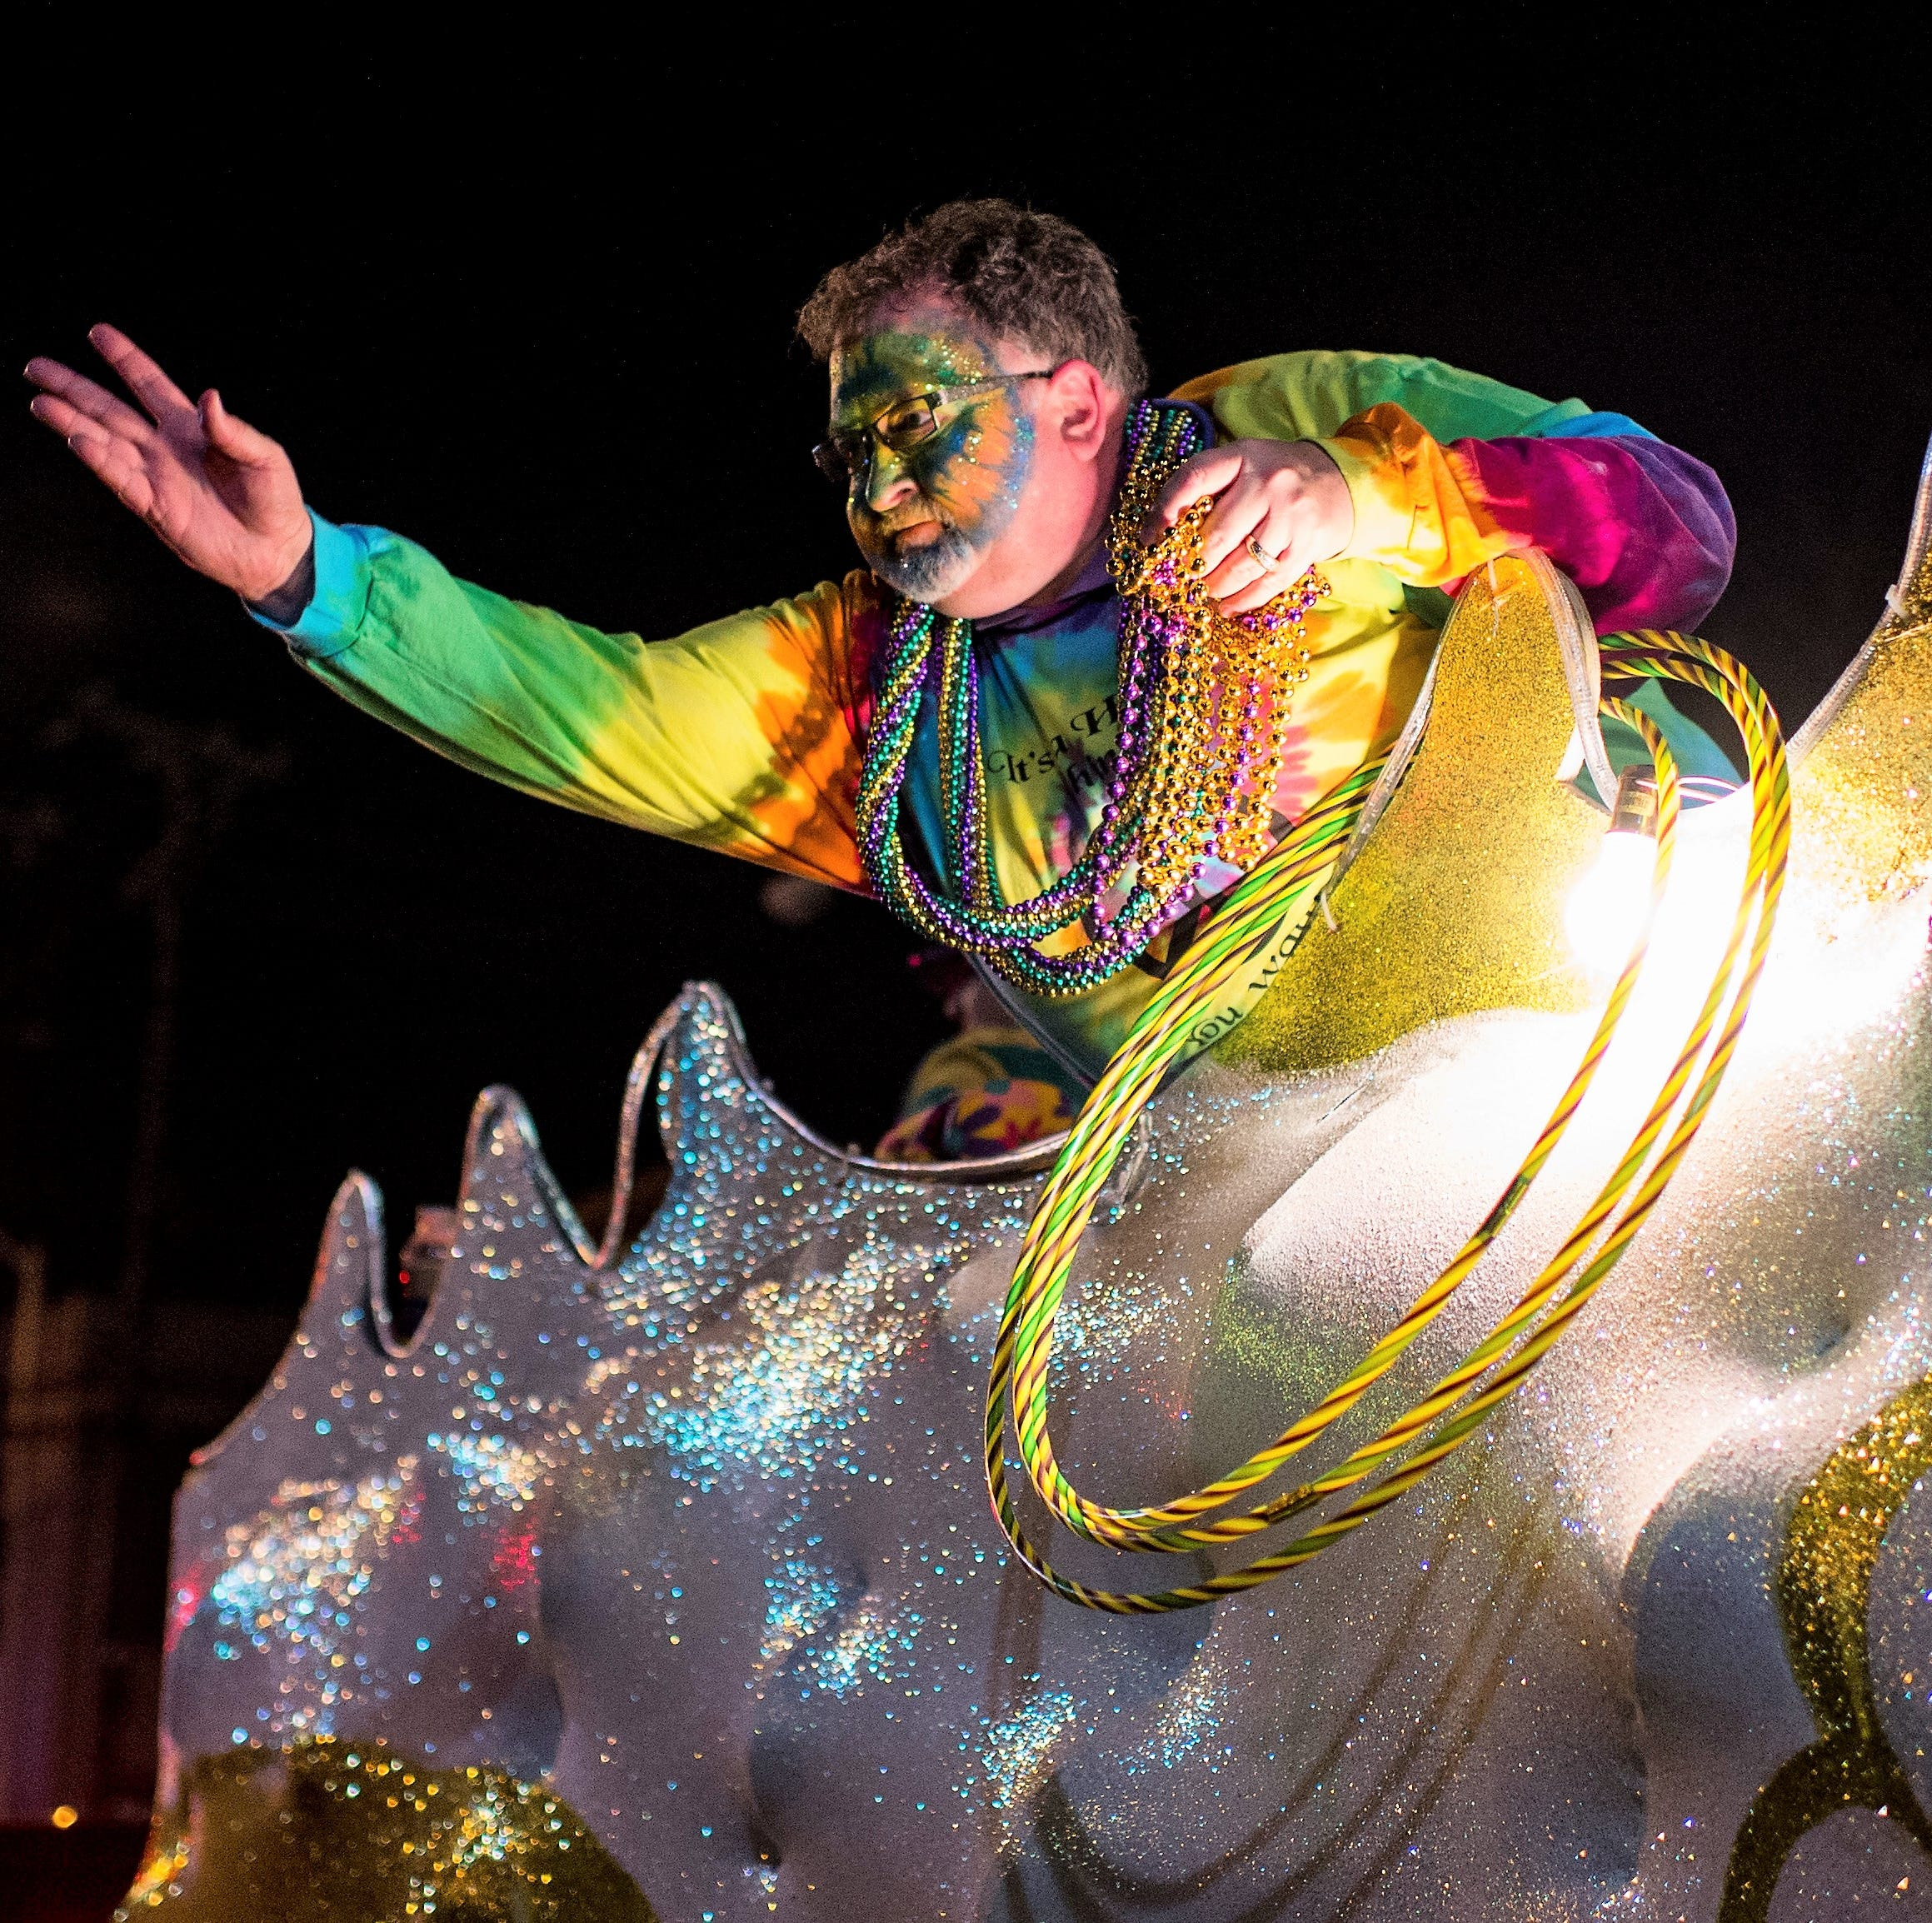 A new Friday night Mardi Gras parade? Maybe, but who?